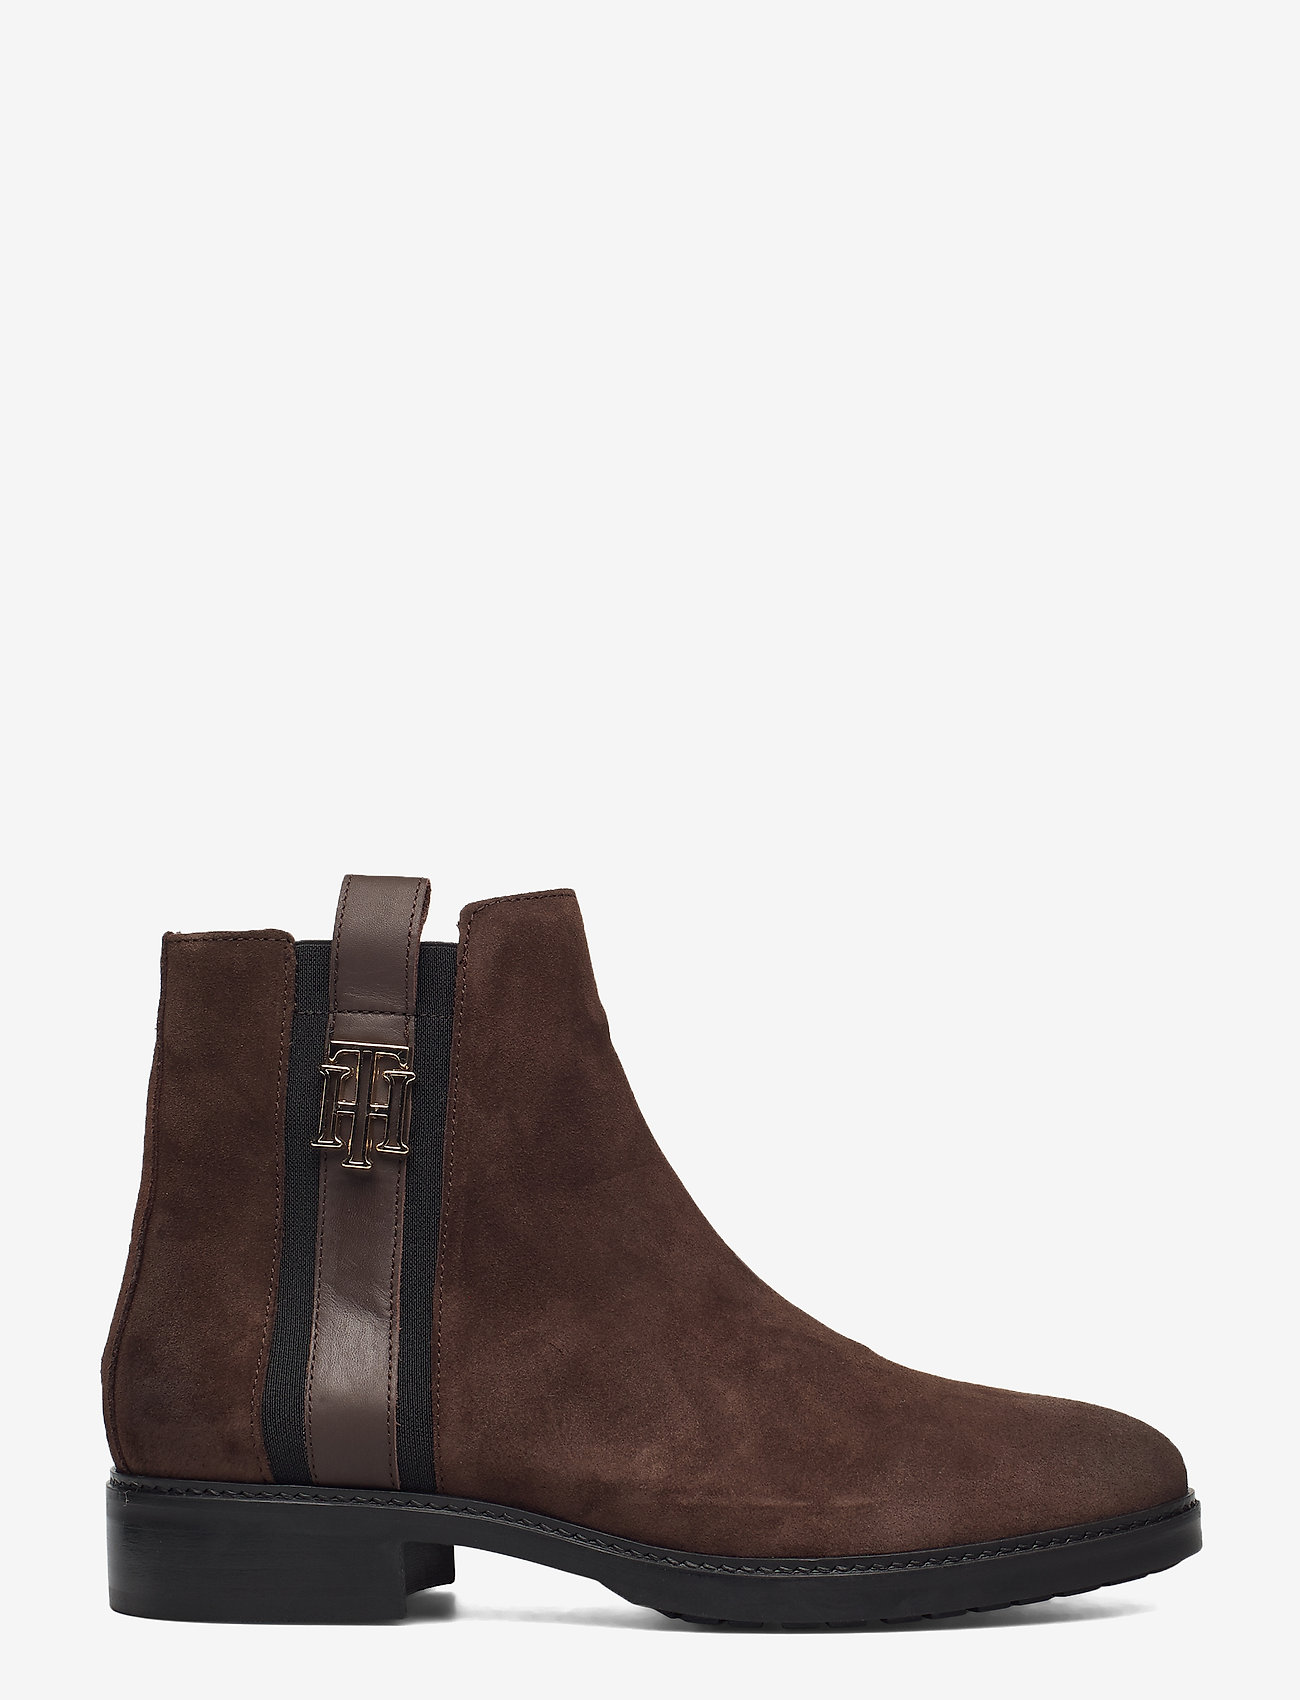 Tommy Hilfiger - TH INTERLOCK SUEDE FLAT BOOT - cocoa - 1